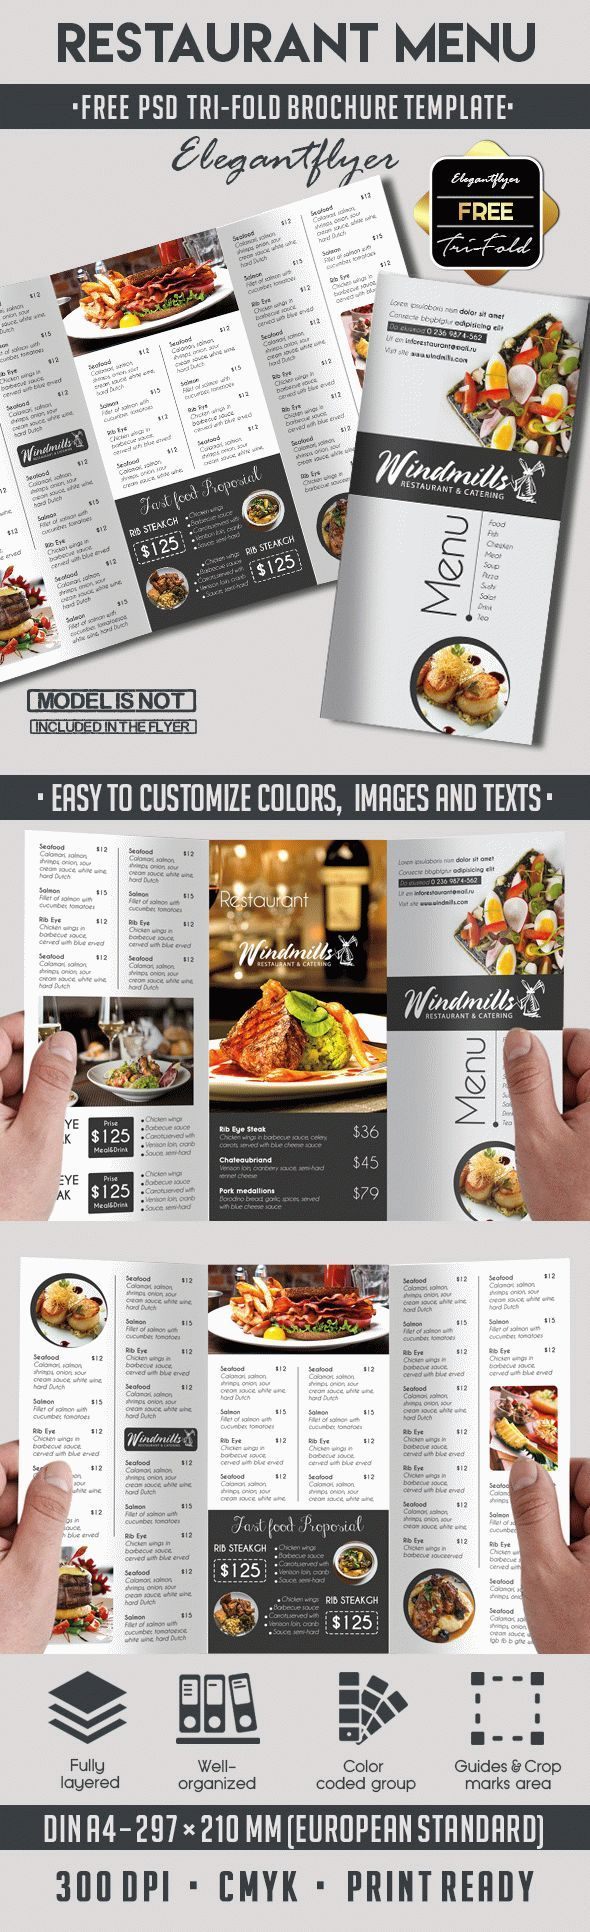 Restaurant menu free psd tri fold psd brochure template free brochure templates pinterest for Restaurant menu psd